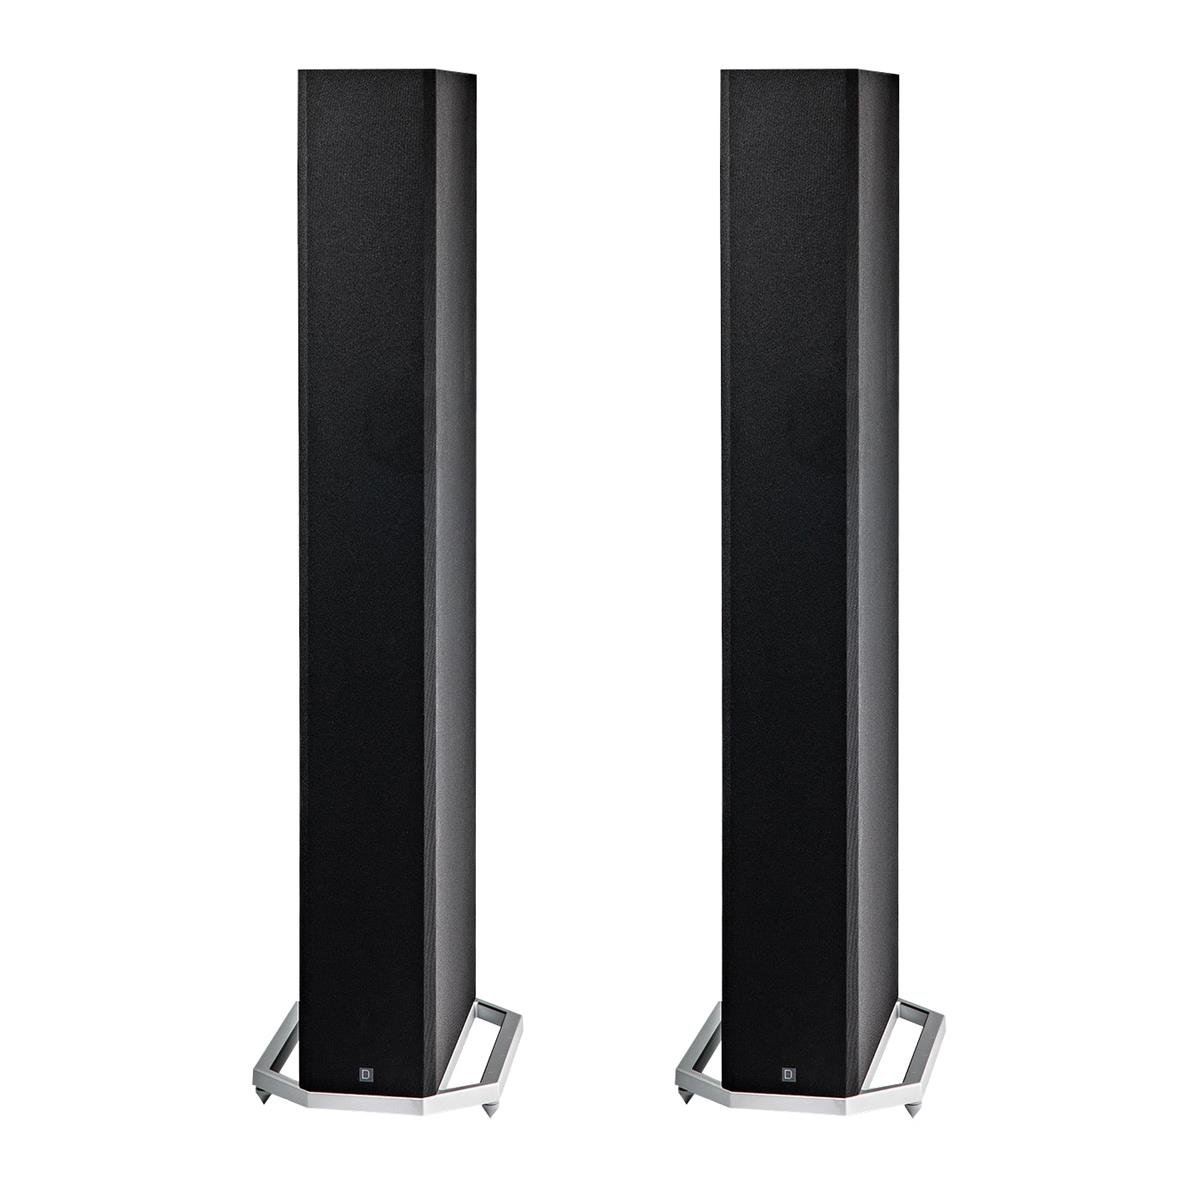 Definitive Technology BP9060 High Power Bipolar Tower Speaker with Integrated 10'' Subwoofer - Pair (Black)